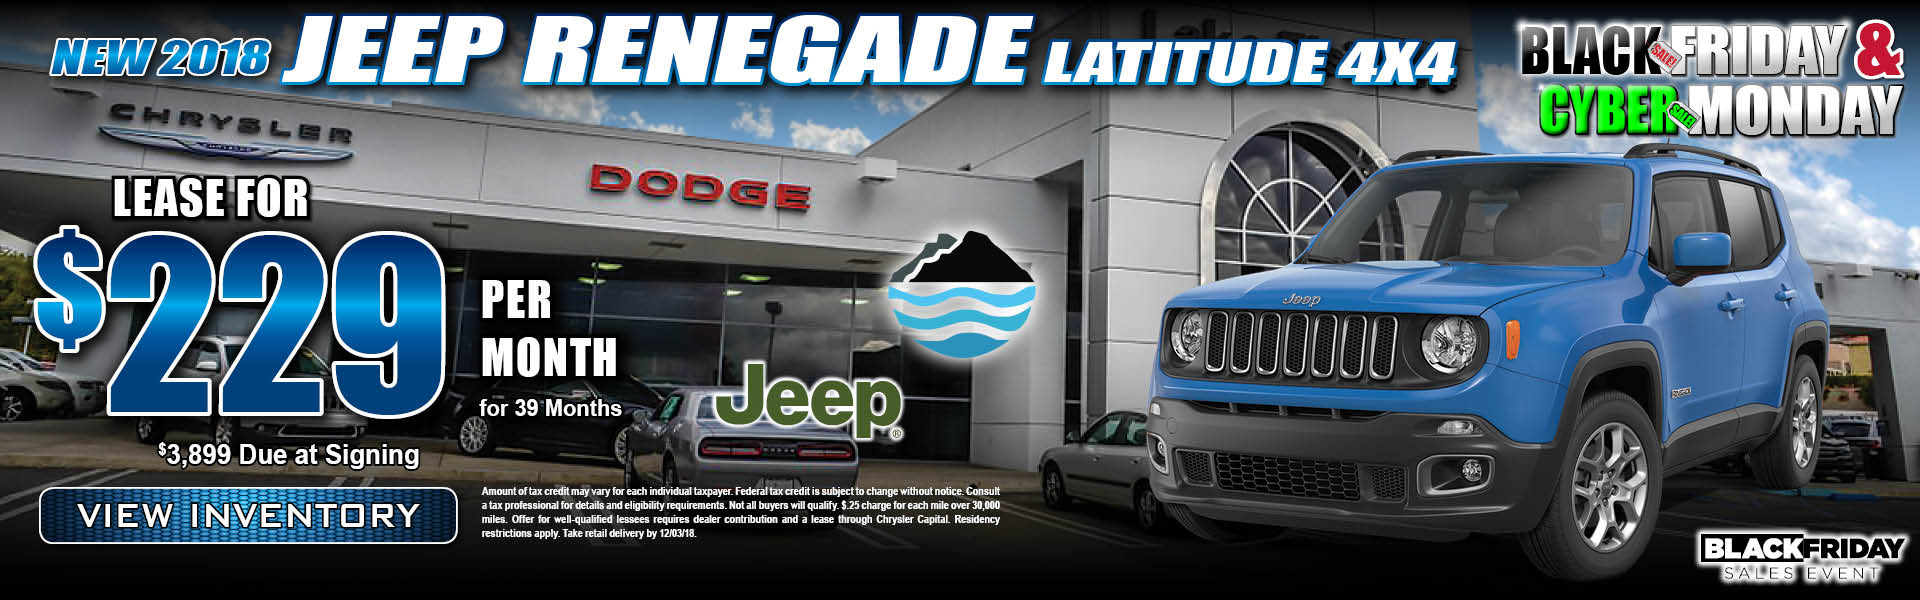 Jeep Renegade $229 Lease